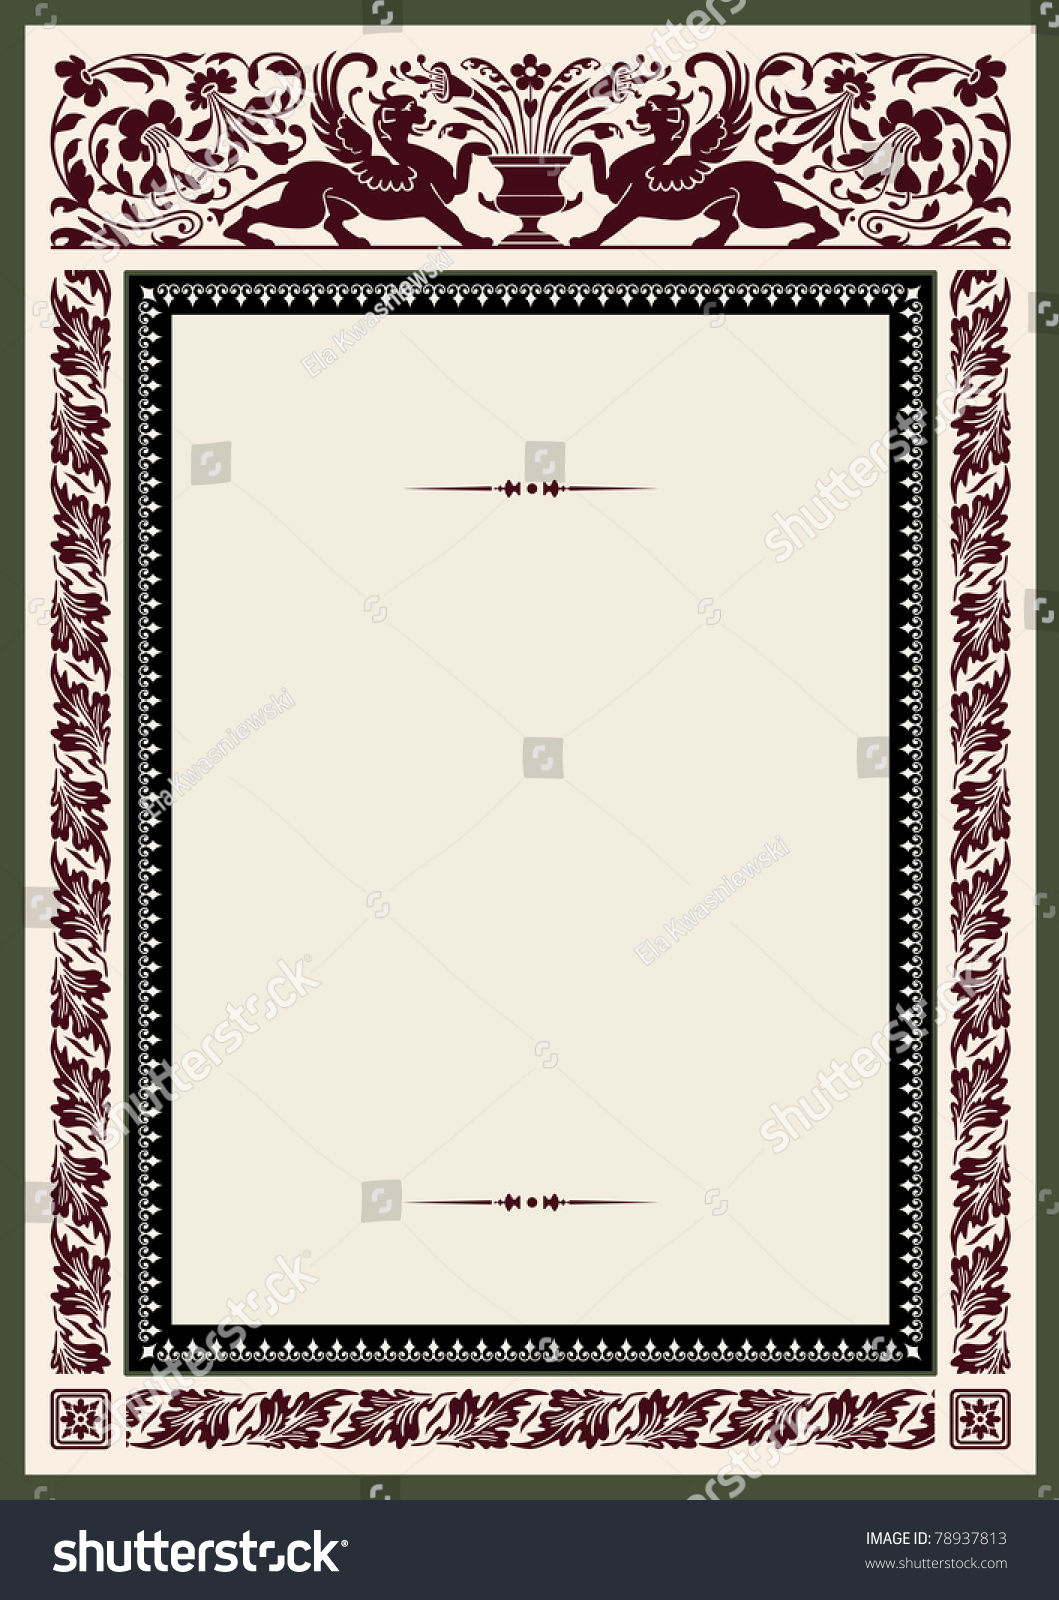 Vintage frame certificate awards diploma template stock vector vintage frame for certificate awards or diploma template with heraldic and floral ornaments 1betcityfo Image collections